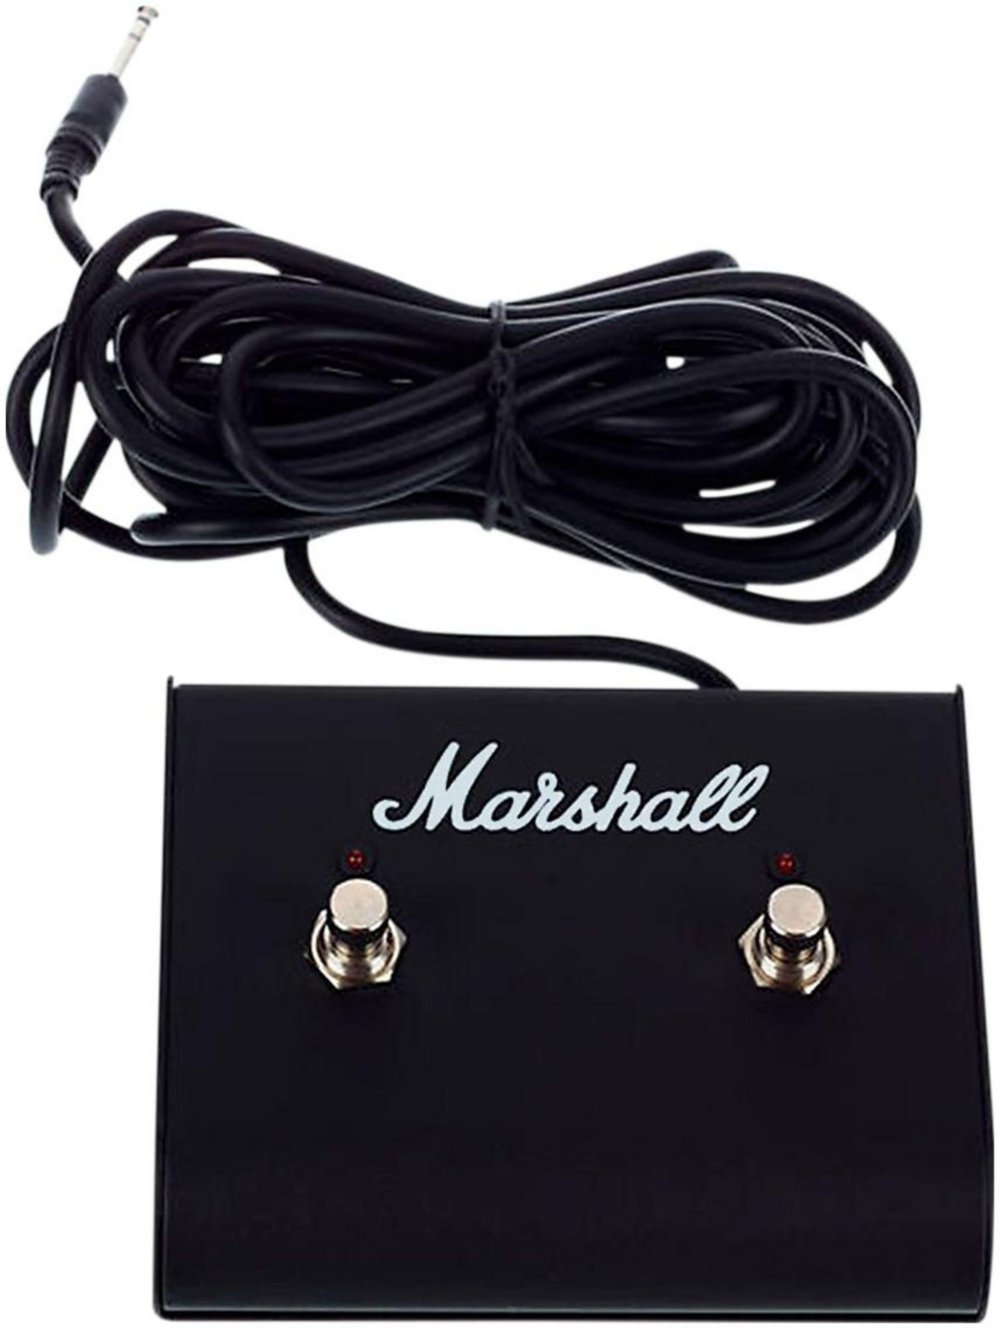 Marshall PEDL-91003 2-button Footswitch by Marshall